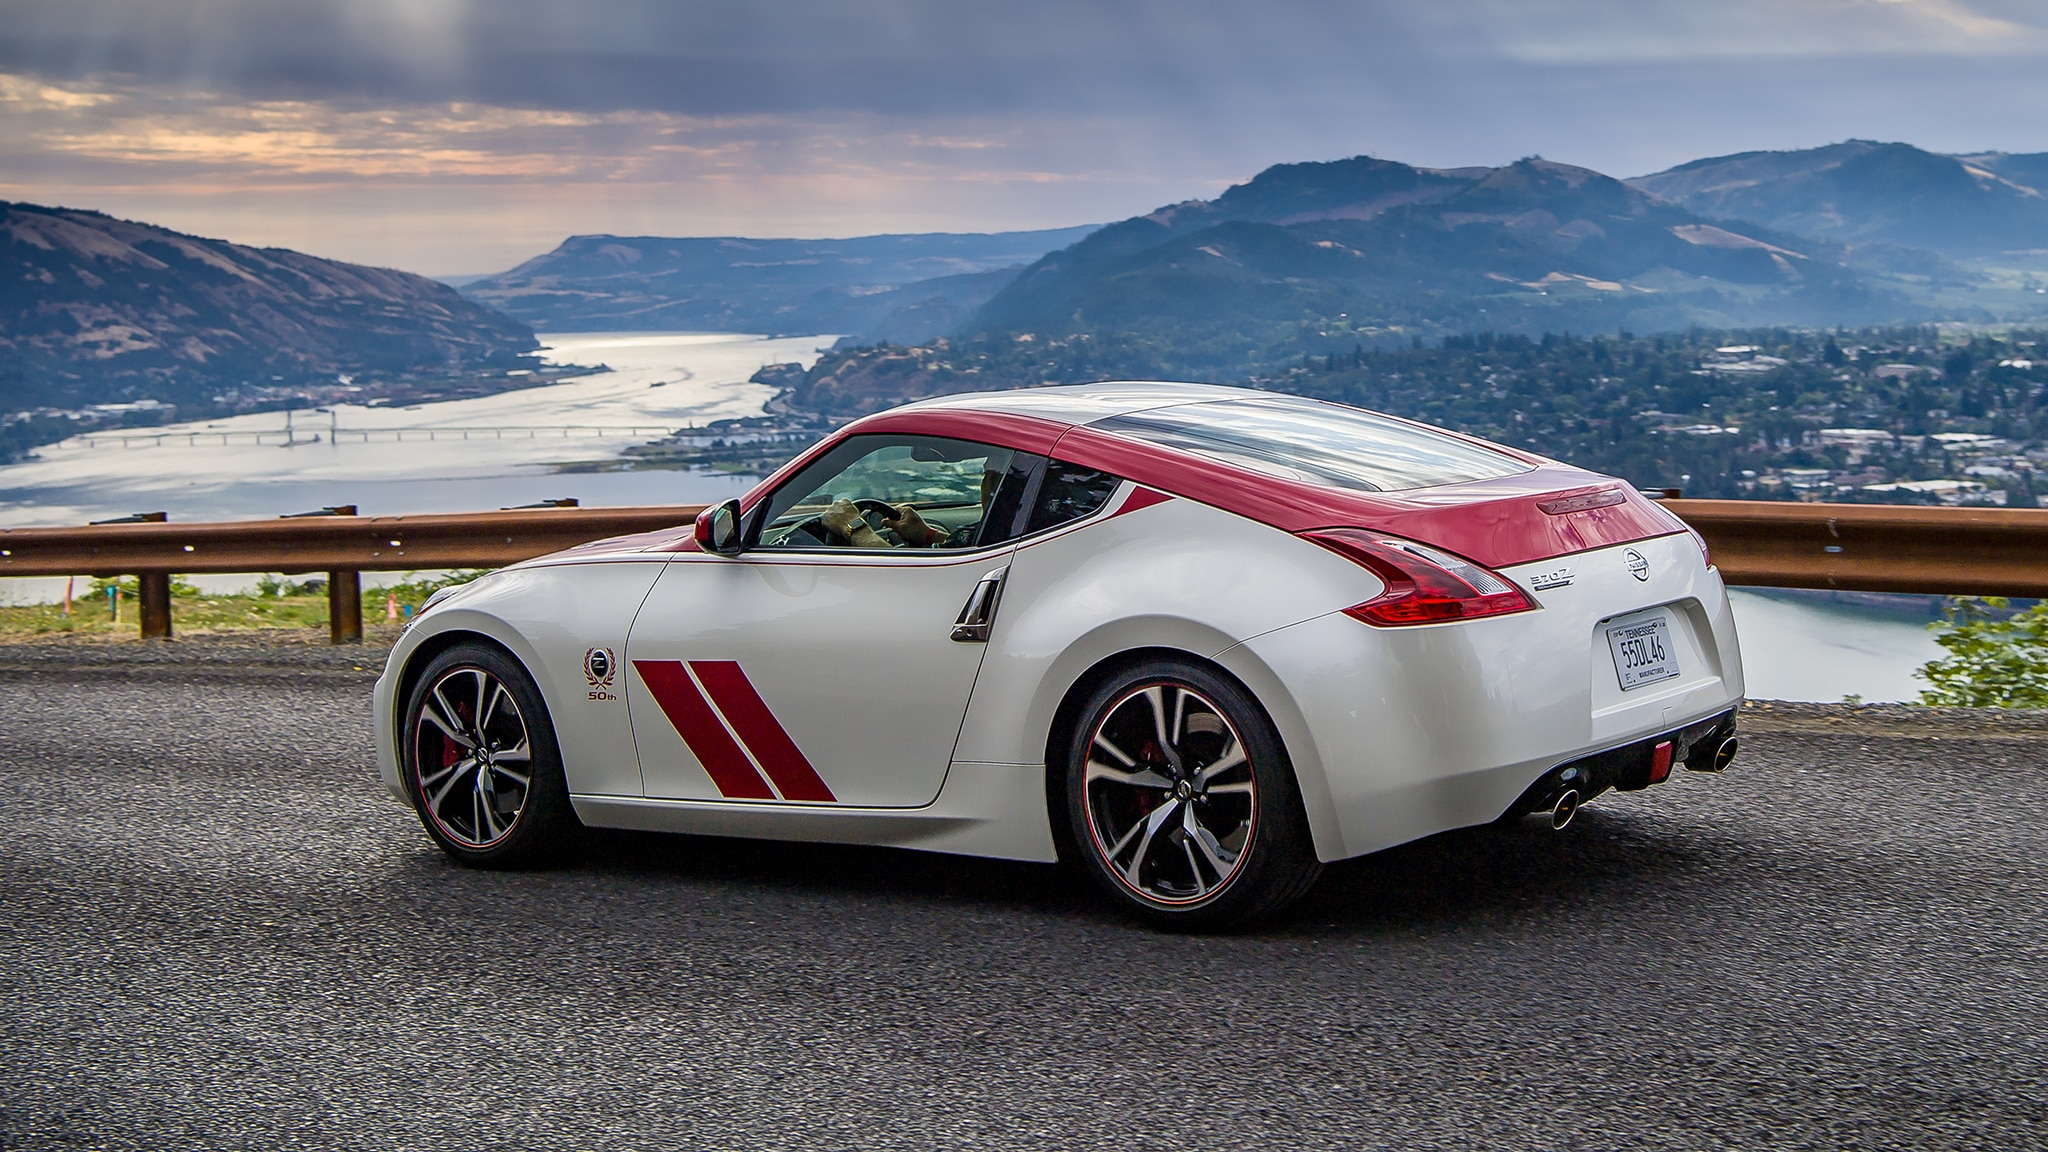 2020 Nissan 370Z Review: It's Ancient—But Still Very Good ...